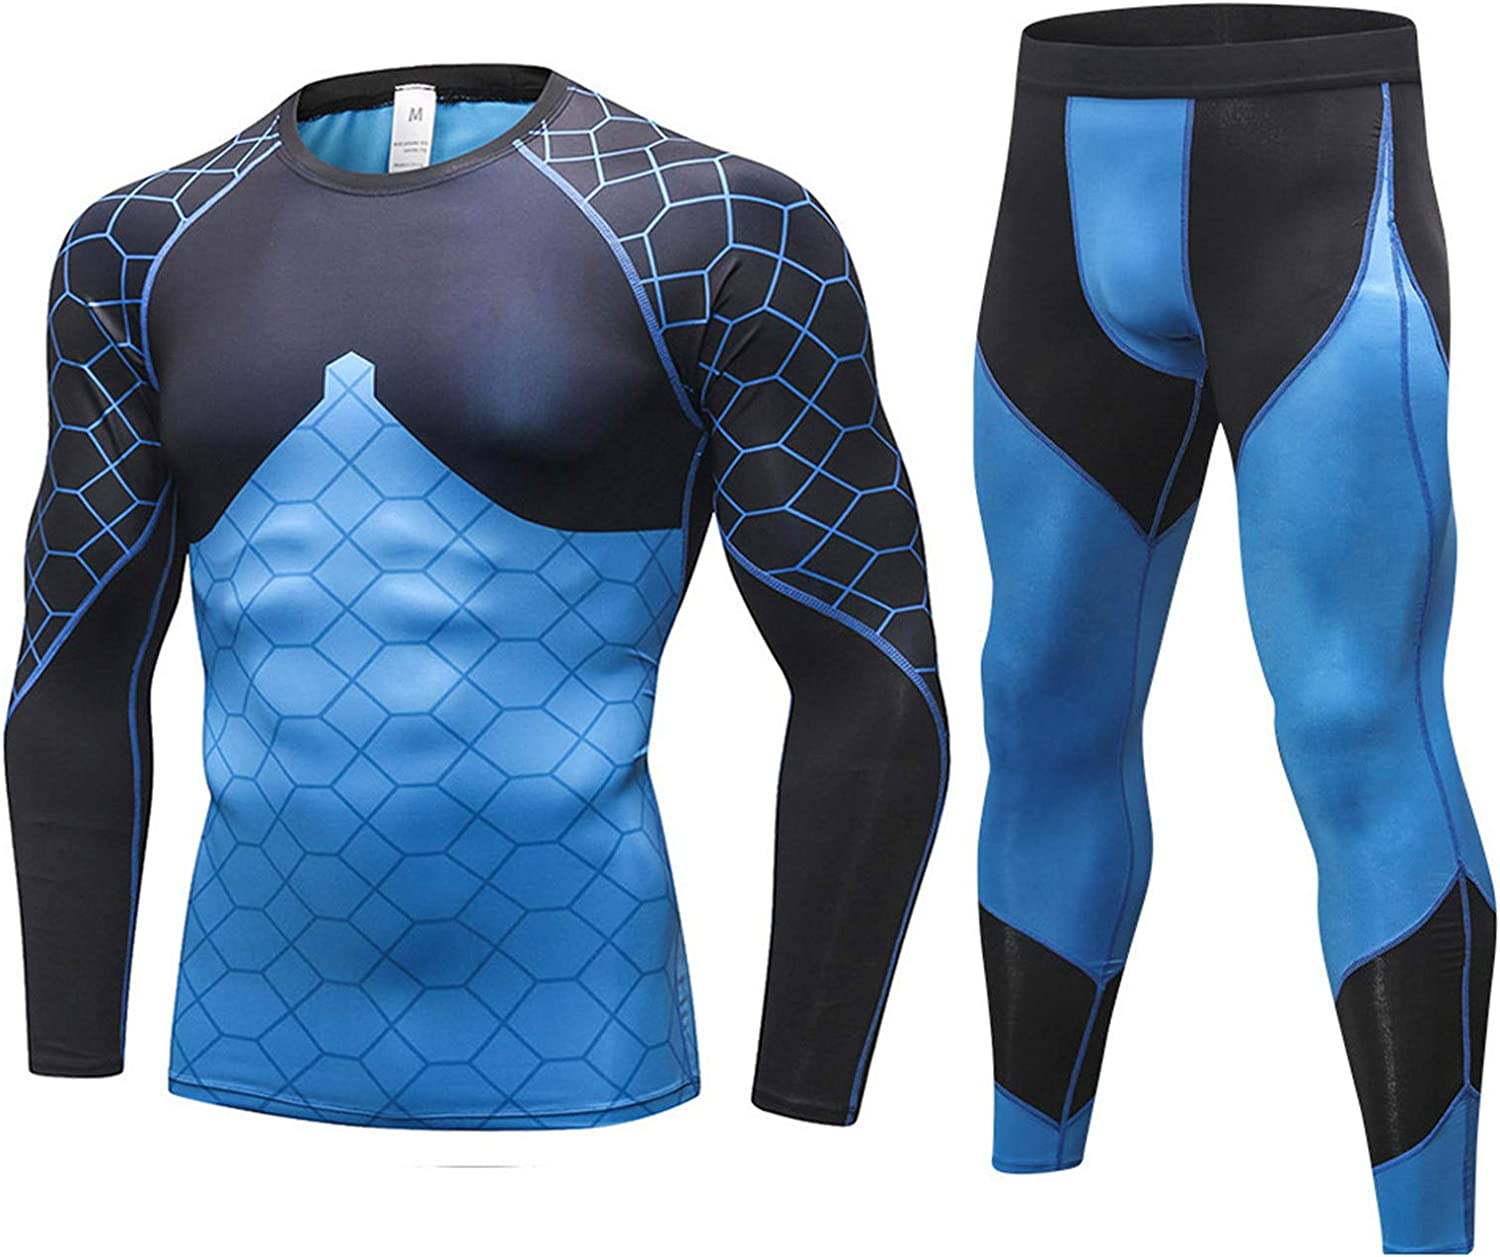 Mens Fitness Shorts Pants Moisture Wicking Stretch Compression Long Johns Shorts